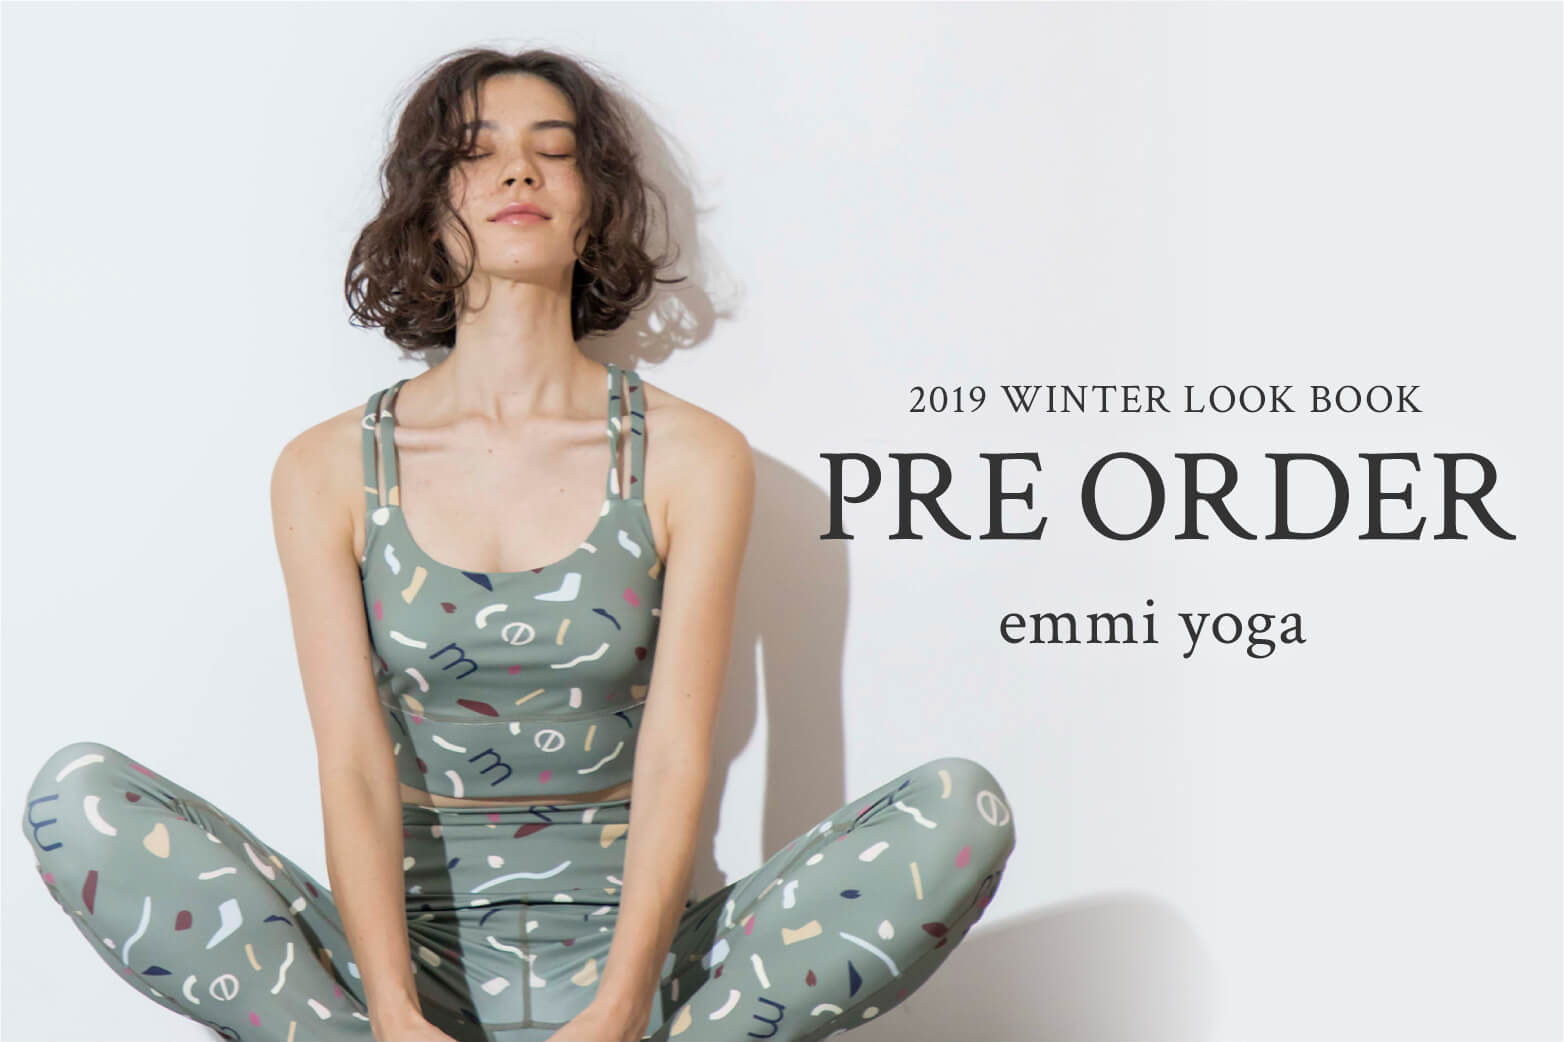 2019 WINTER LOOK BOOK PRE ORDER emmi yoga